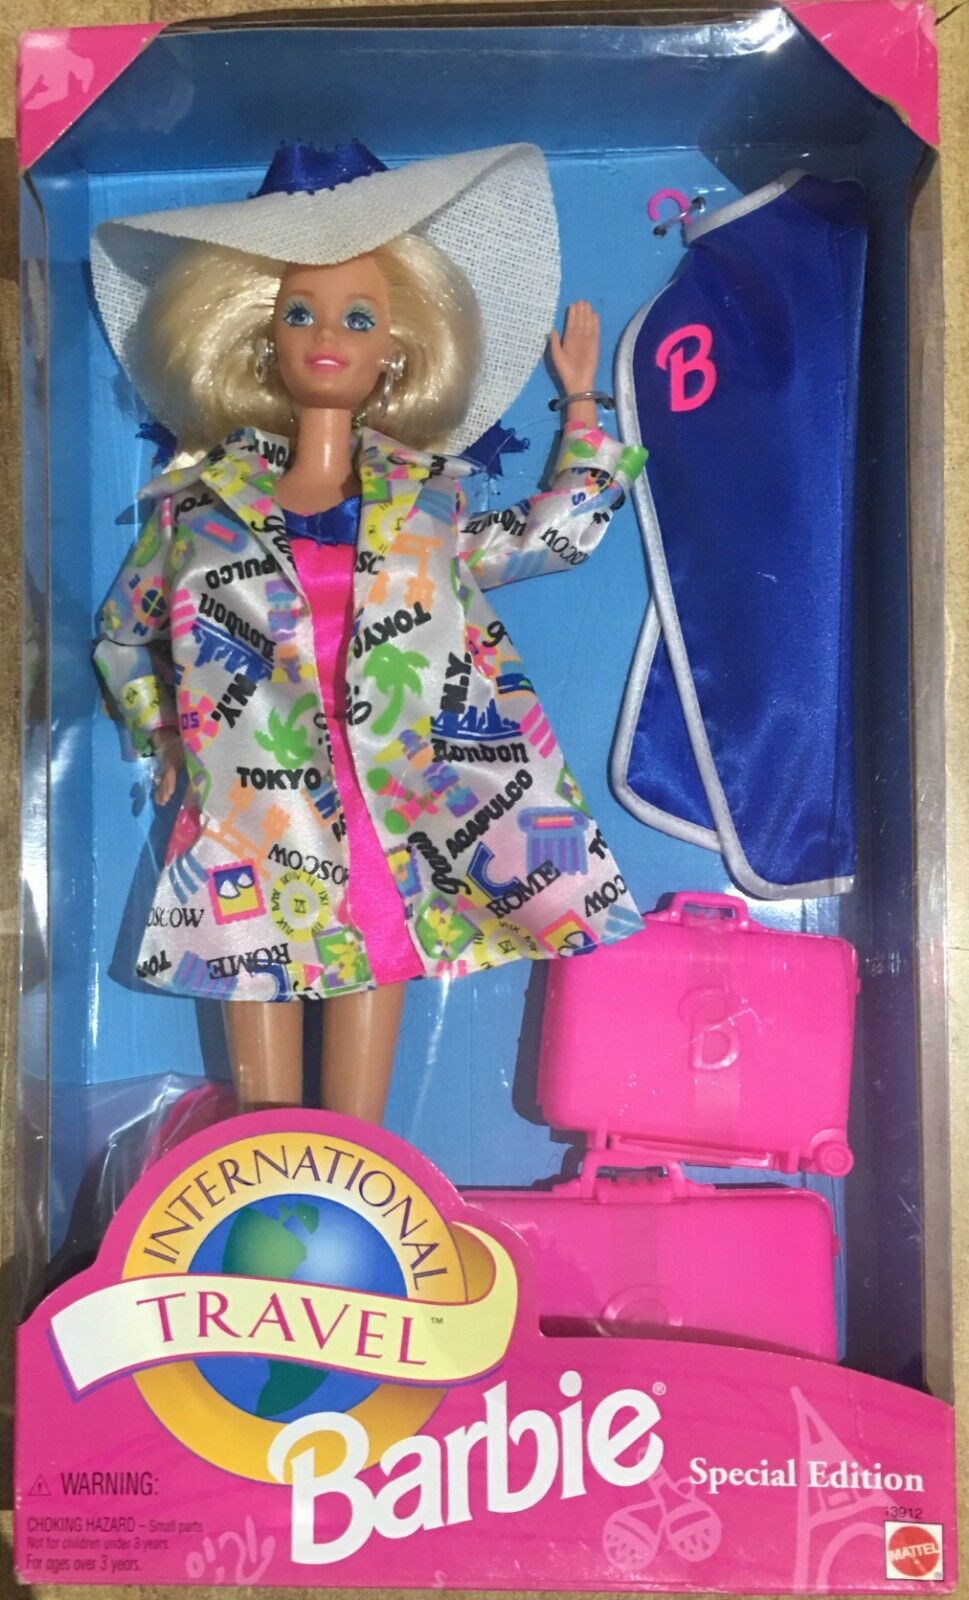 Barbie Mattel International Travel Special Edition Vintage 94'